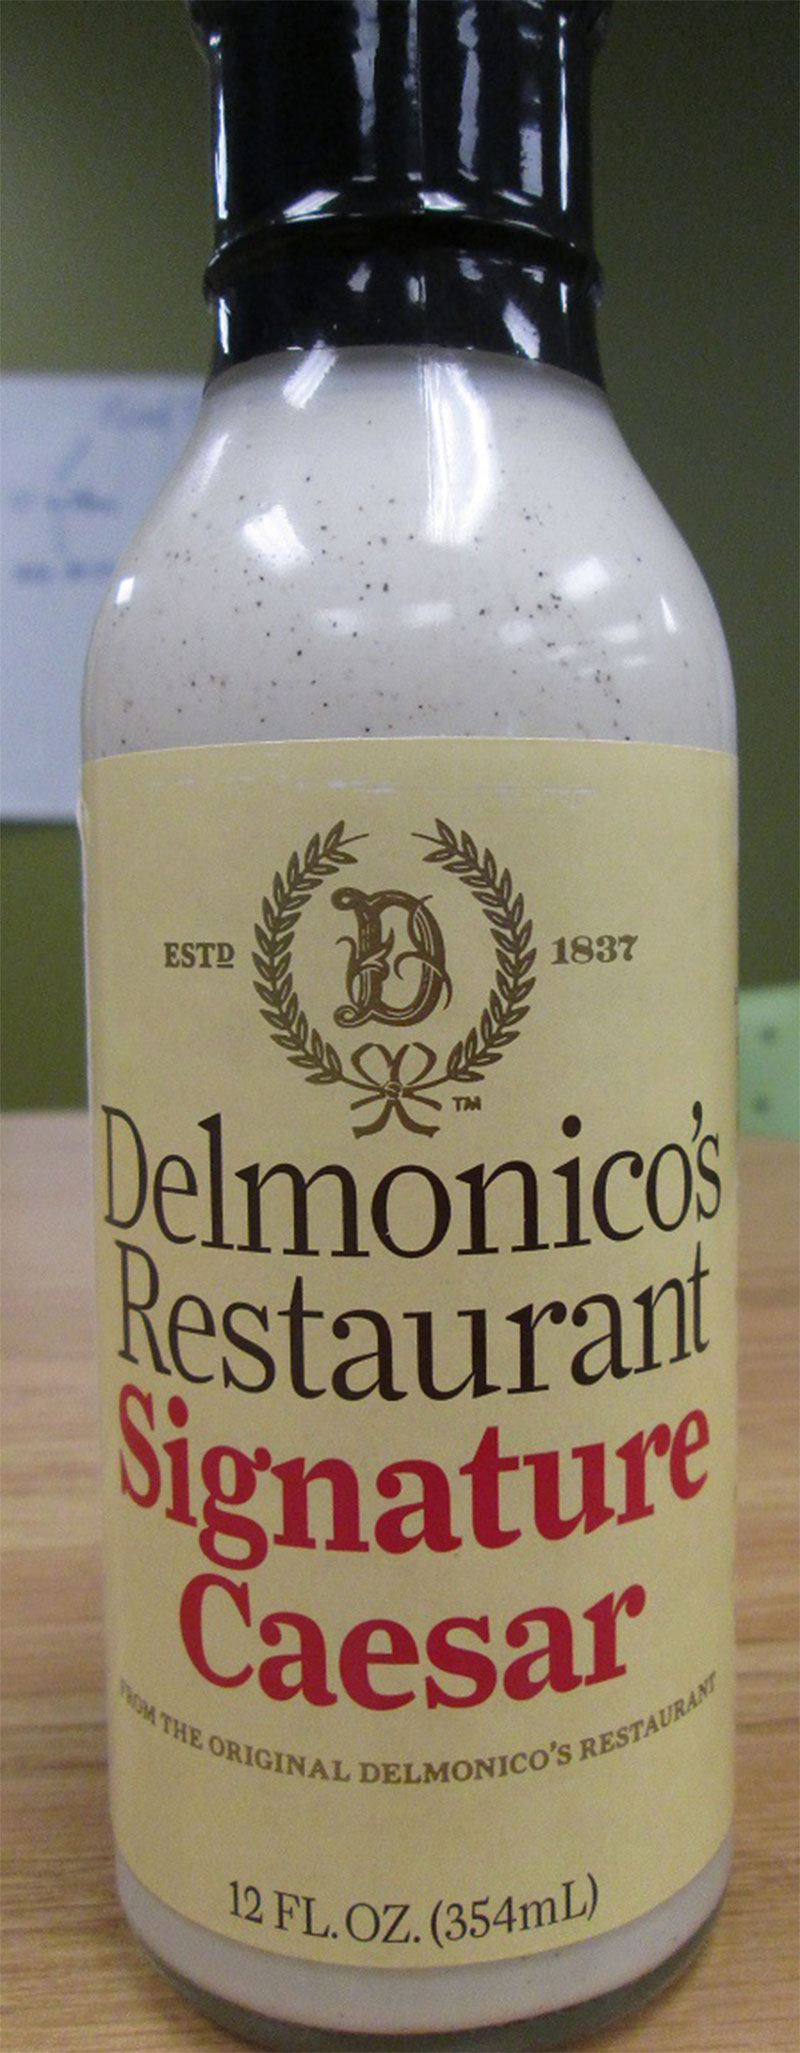 Food Recall Warning (Allergen) - Delmonico's Restaurant brand salad dressing recalled due to undeclared mustard